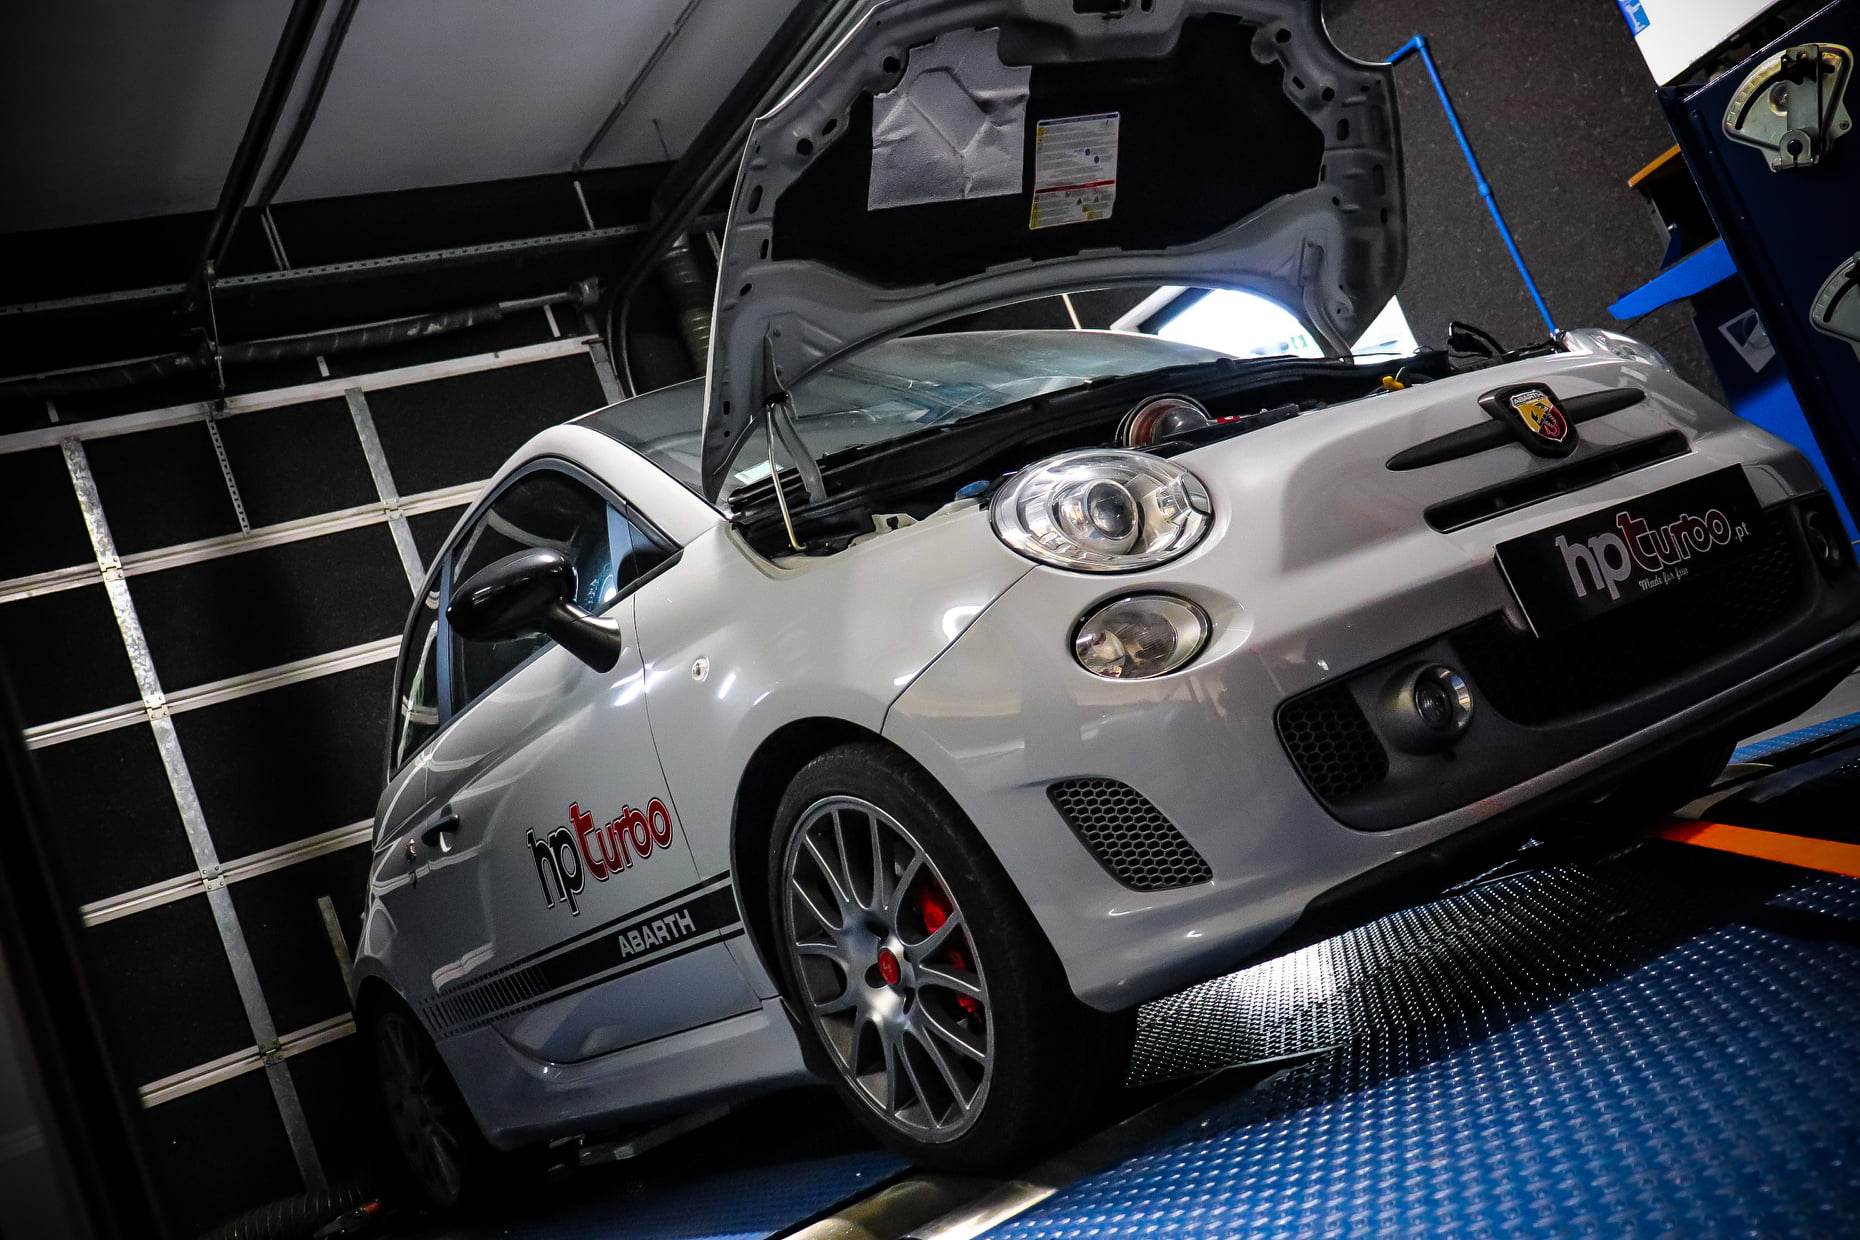 HPT #ARTICLE31 Upgrade 595 COMPETIZIONE Abarth 1.4 Original 180HP T-Jet 📈 Power 256.6 HP Torque 350 NM